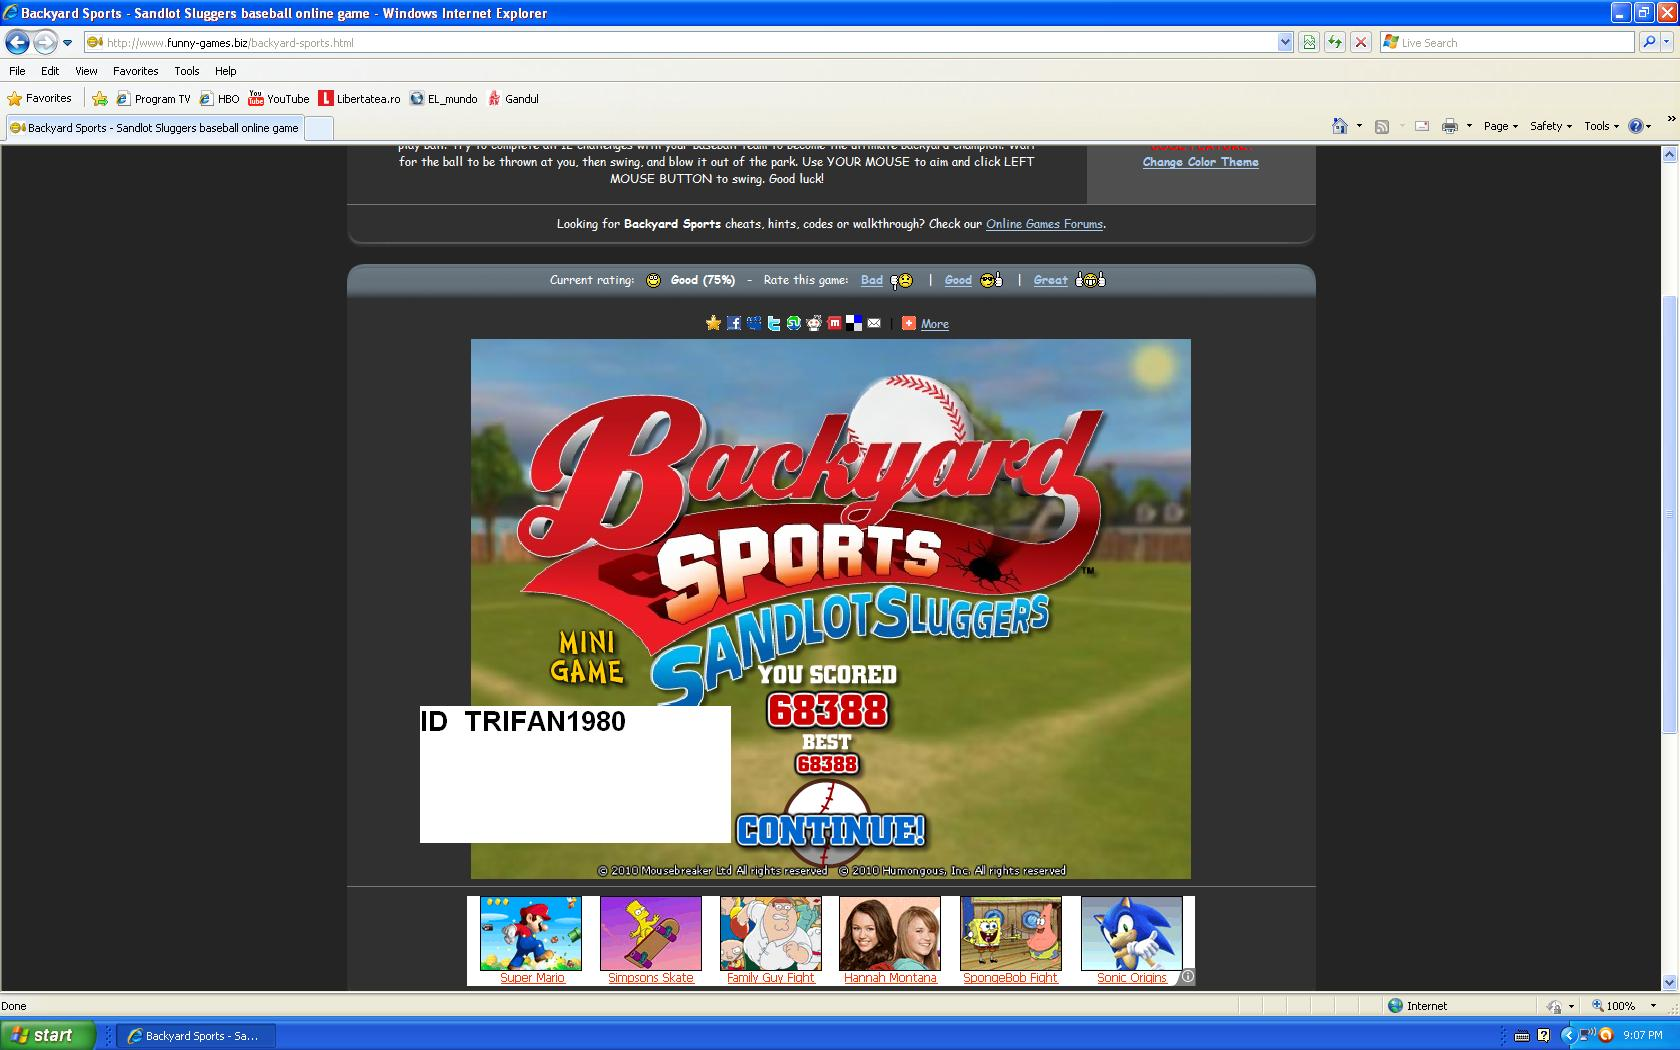 nice backyard sports online part 2 a definitive ranking of